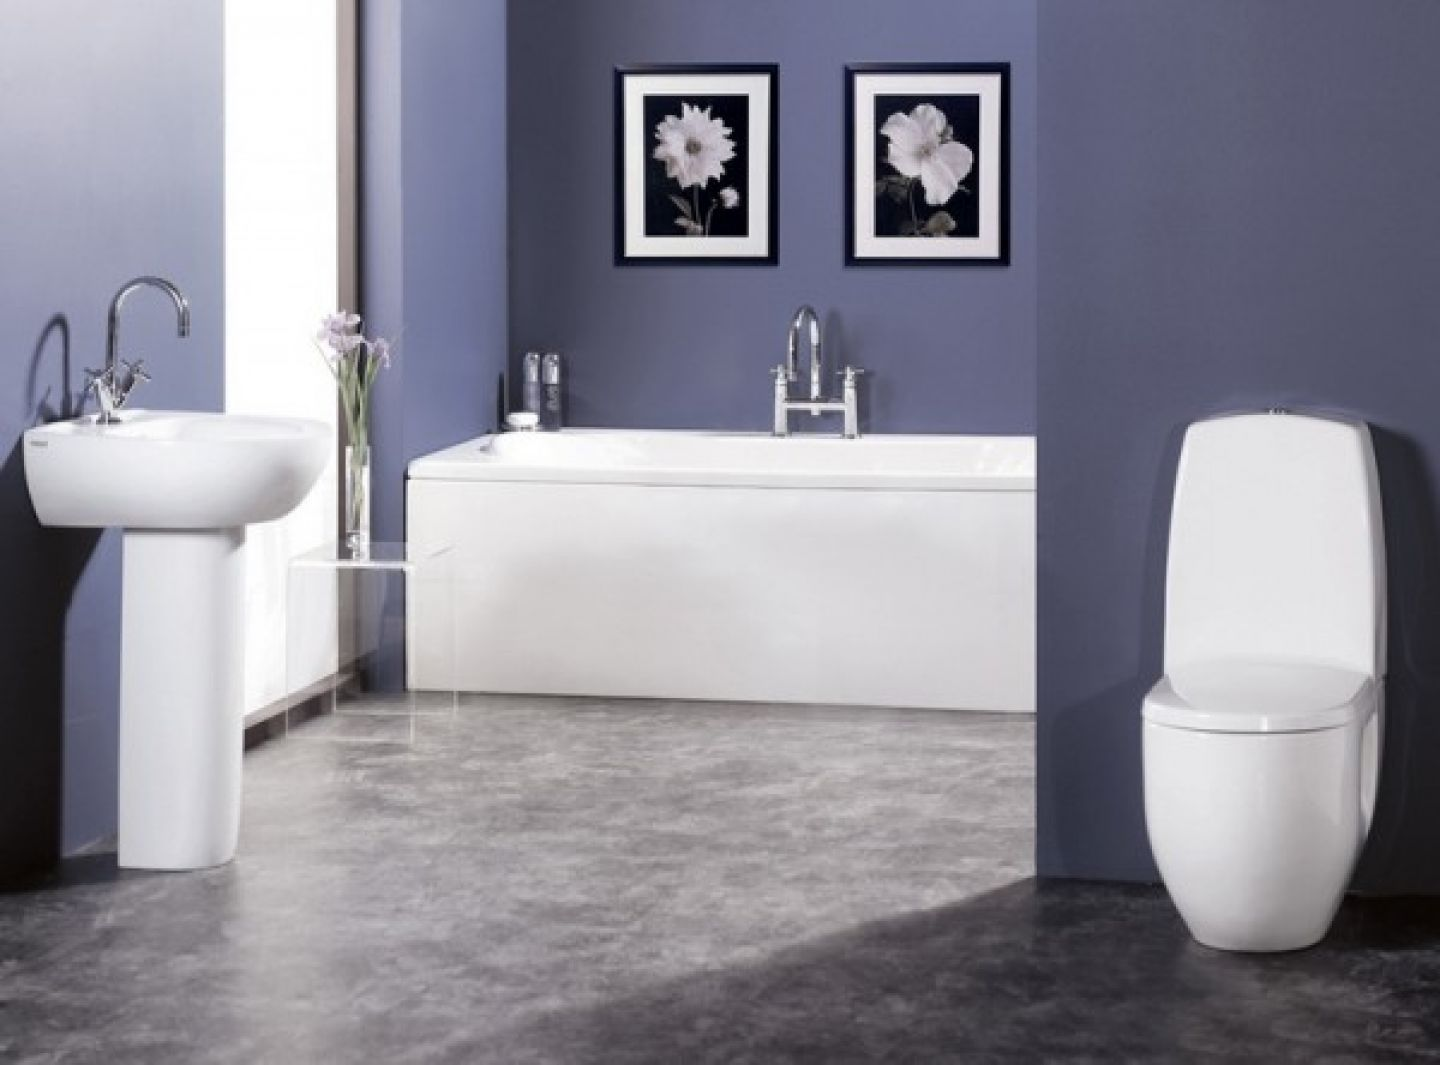 Top 8 Projects That Boost Resale Bathroom Color Schemes Small Bathroom Colors Bathroom Colors Gray